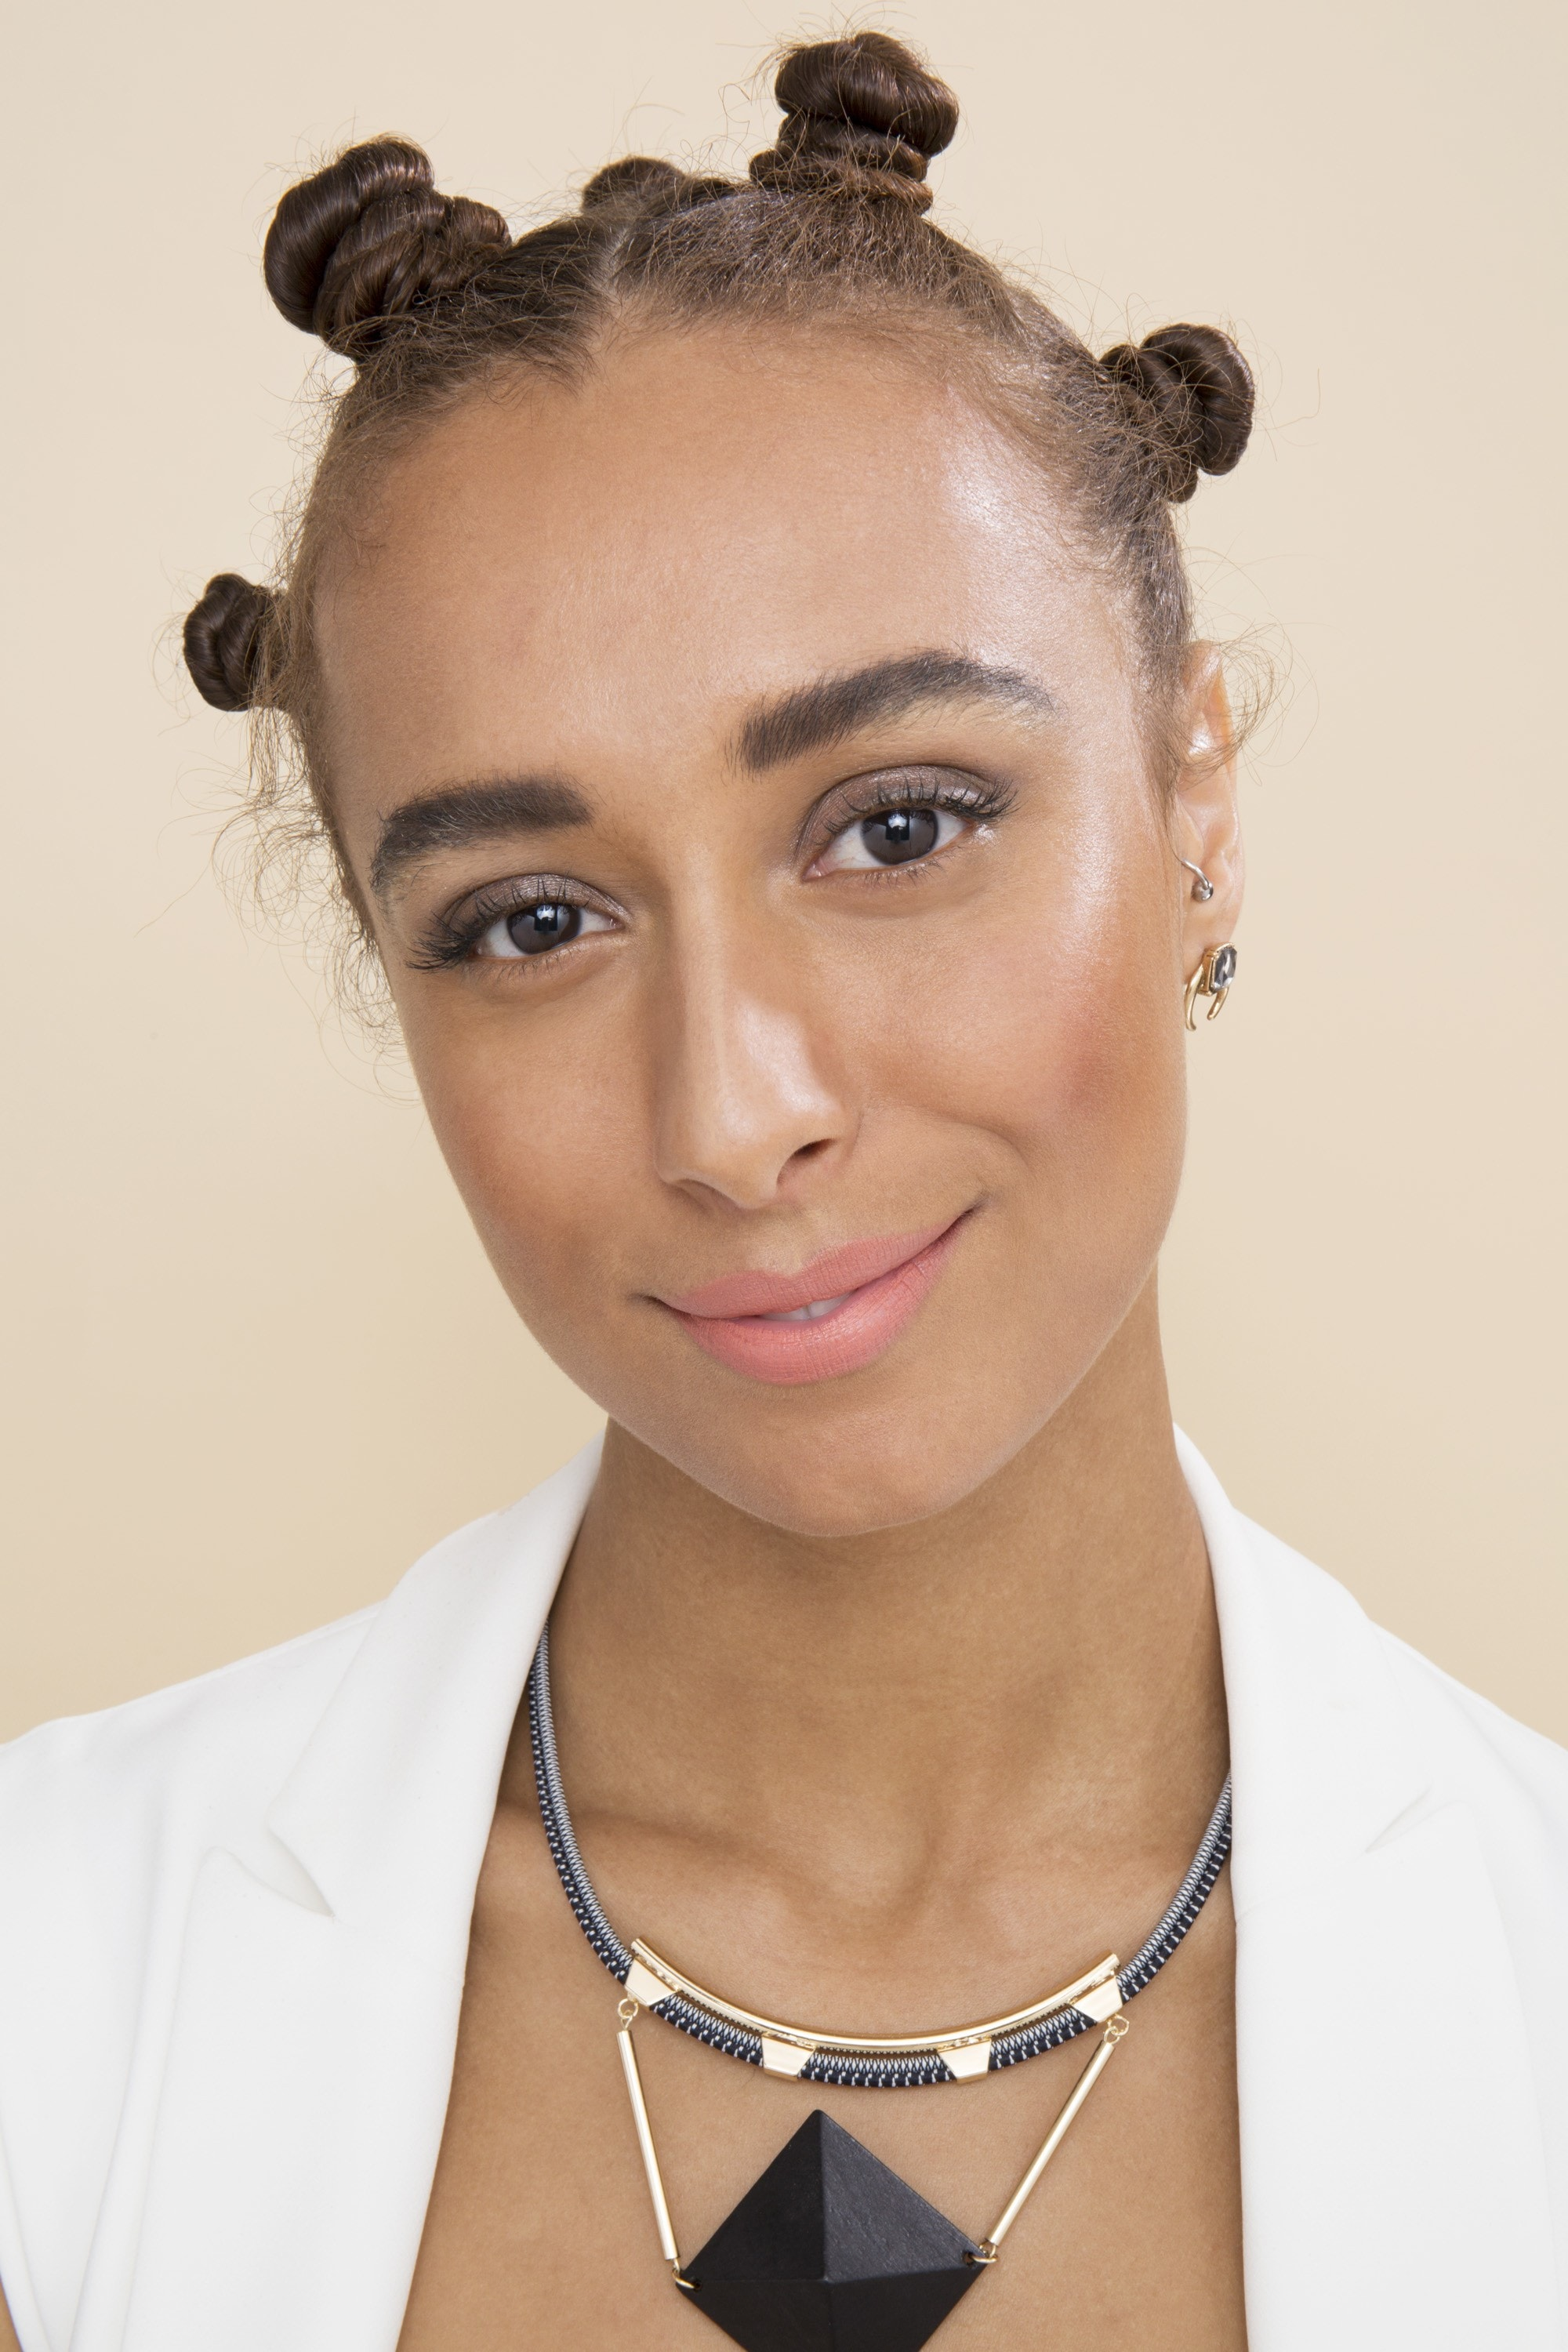 Bantu knots - close up of model with brown hair and bantu knots in final look for tutorial